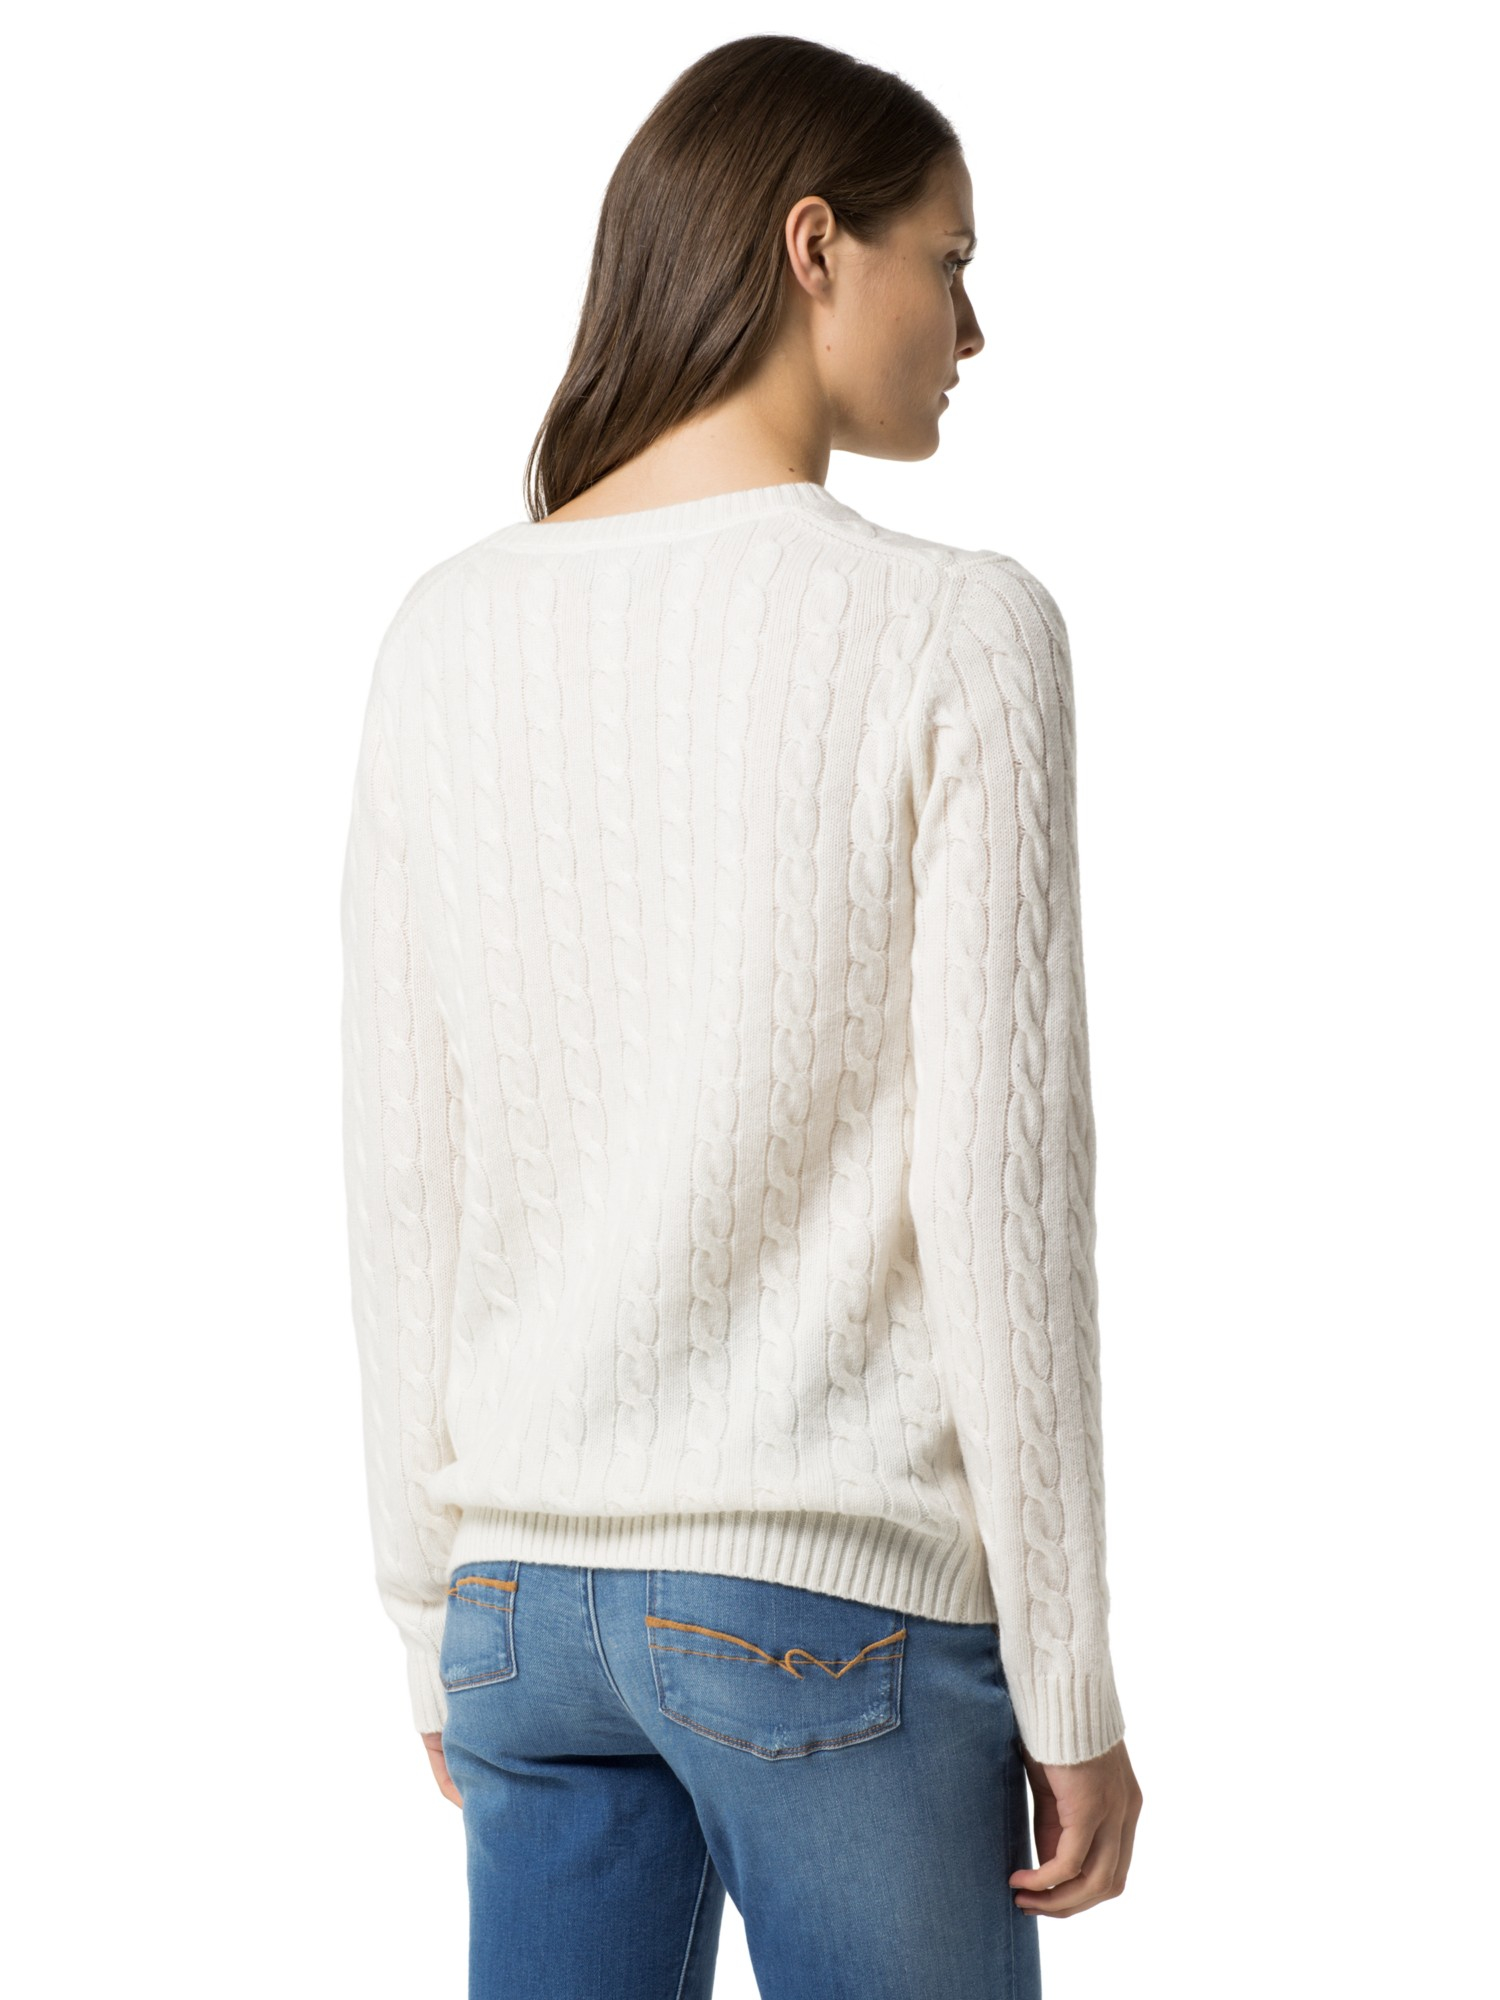 Shop for white cable knit sweater online at Target. Free shipping on purchases over $35 and save 5% every day with your Target REDcard.